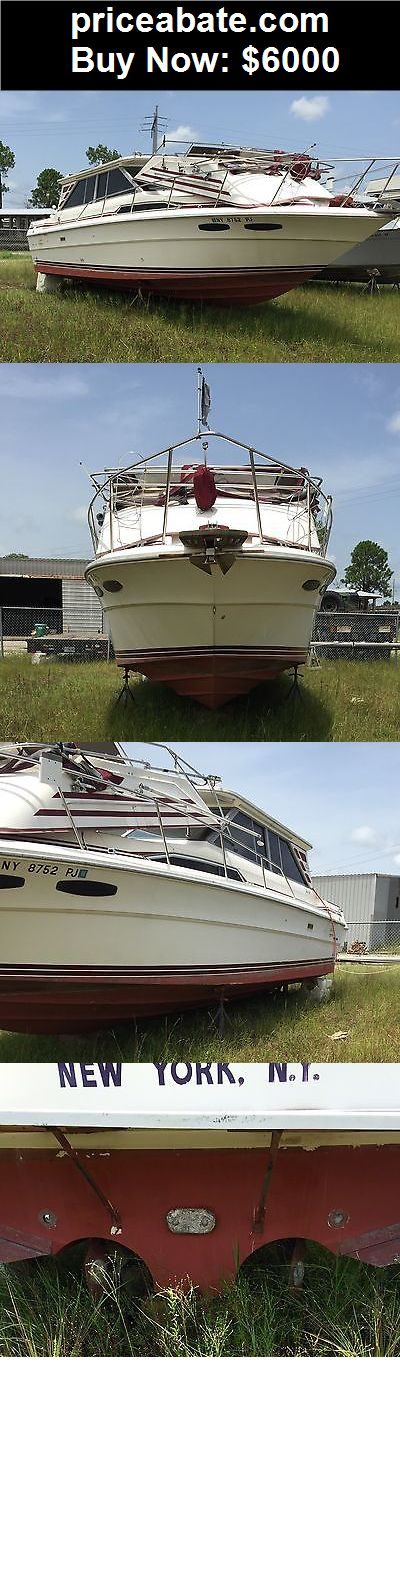 Boats: 1985 34 foot SeaRay yacht with a sedan bridge - BUY IT NOW ONLY $6000